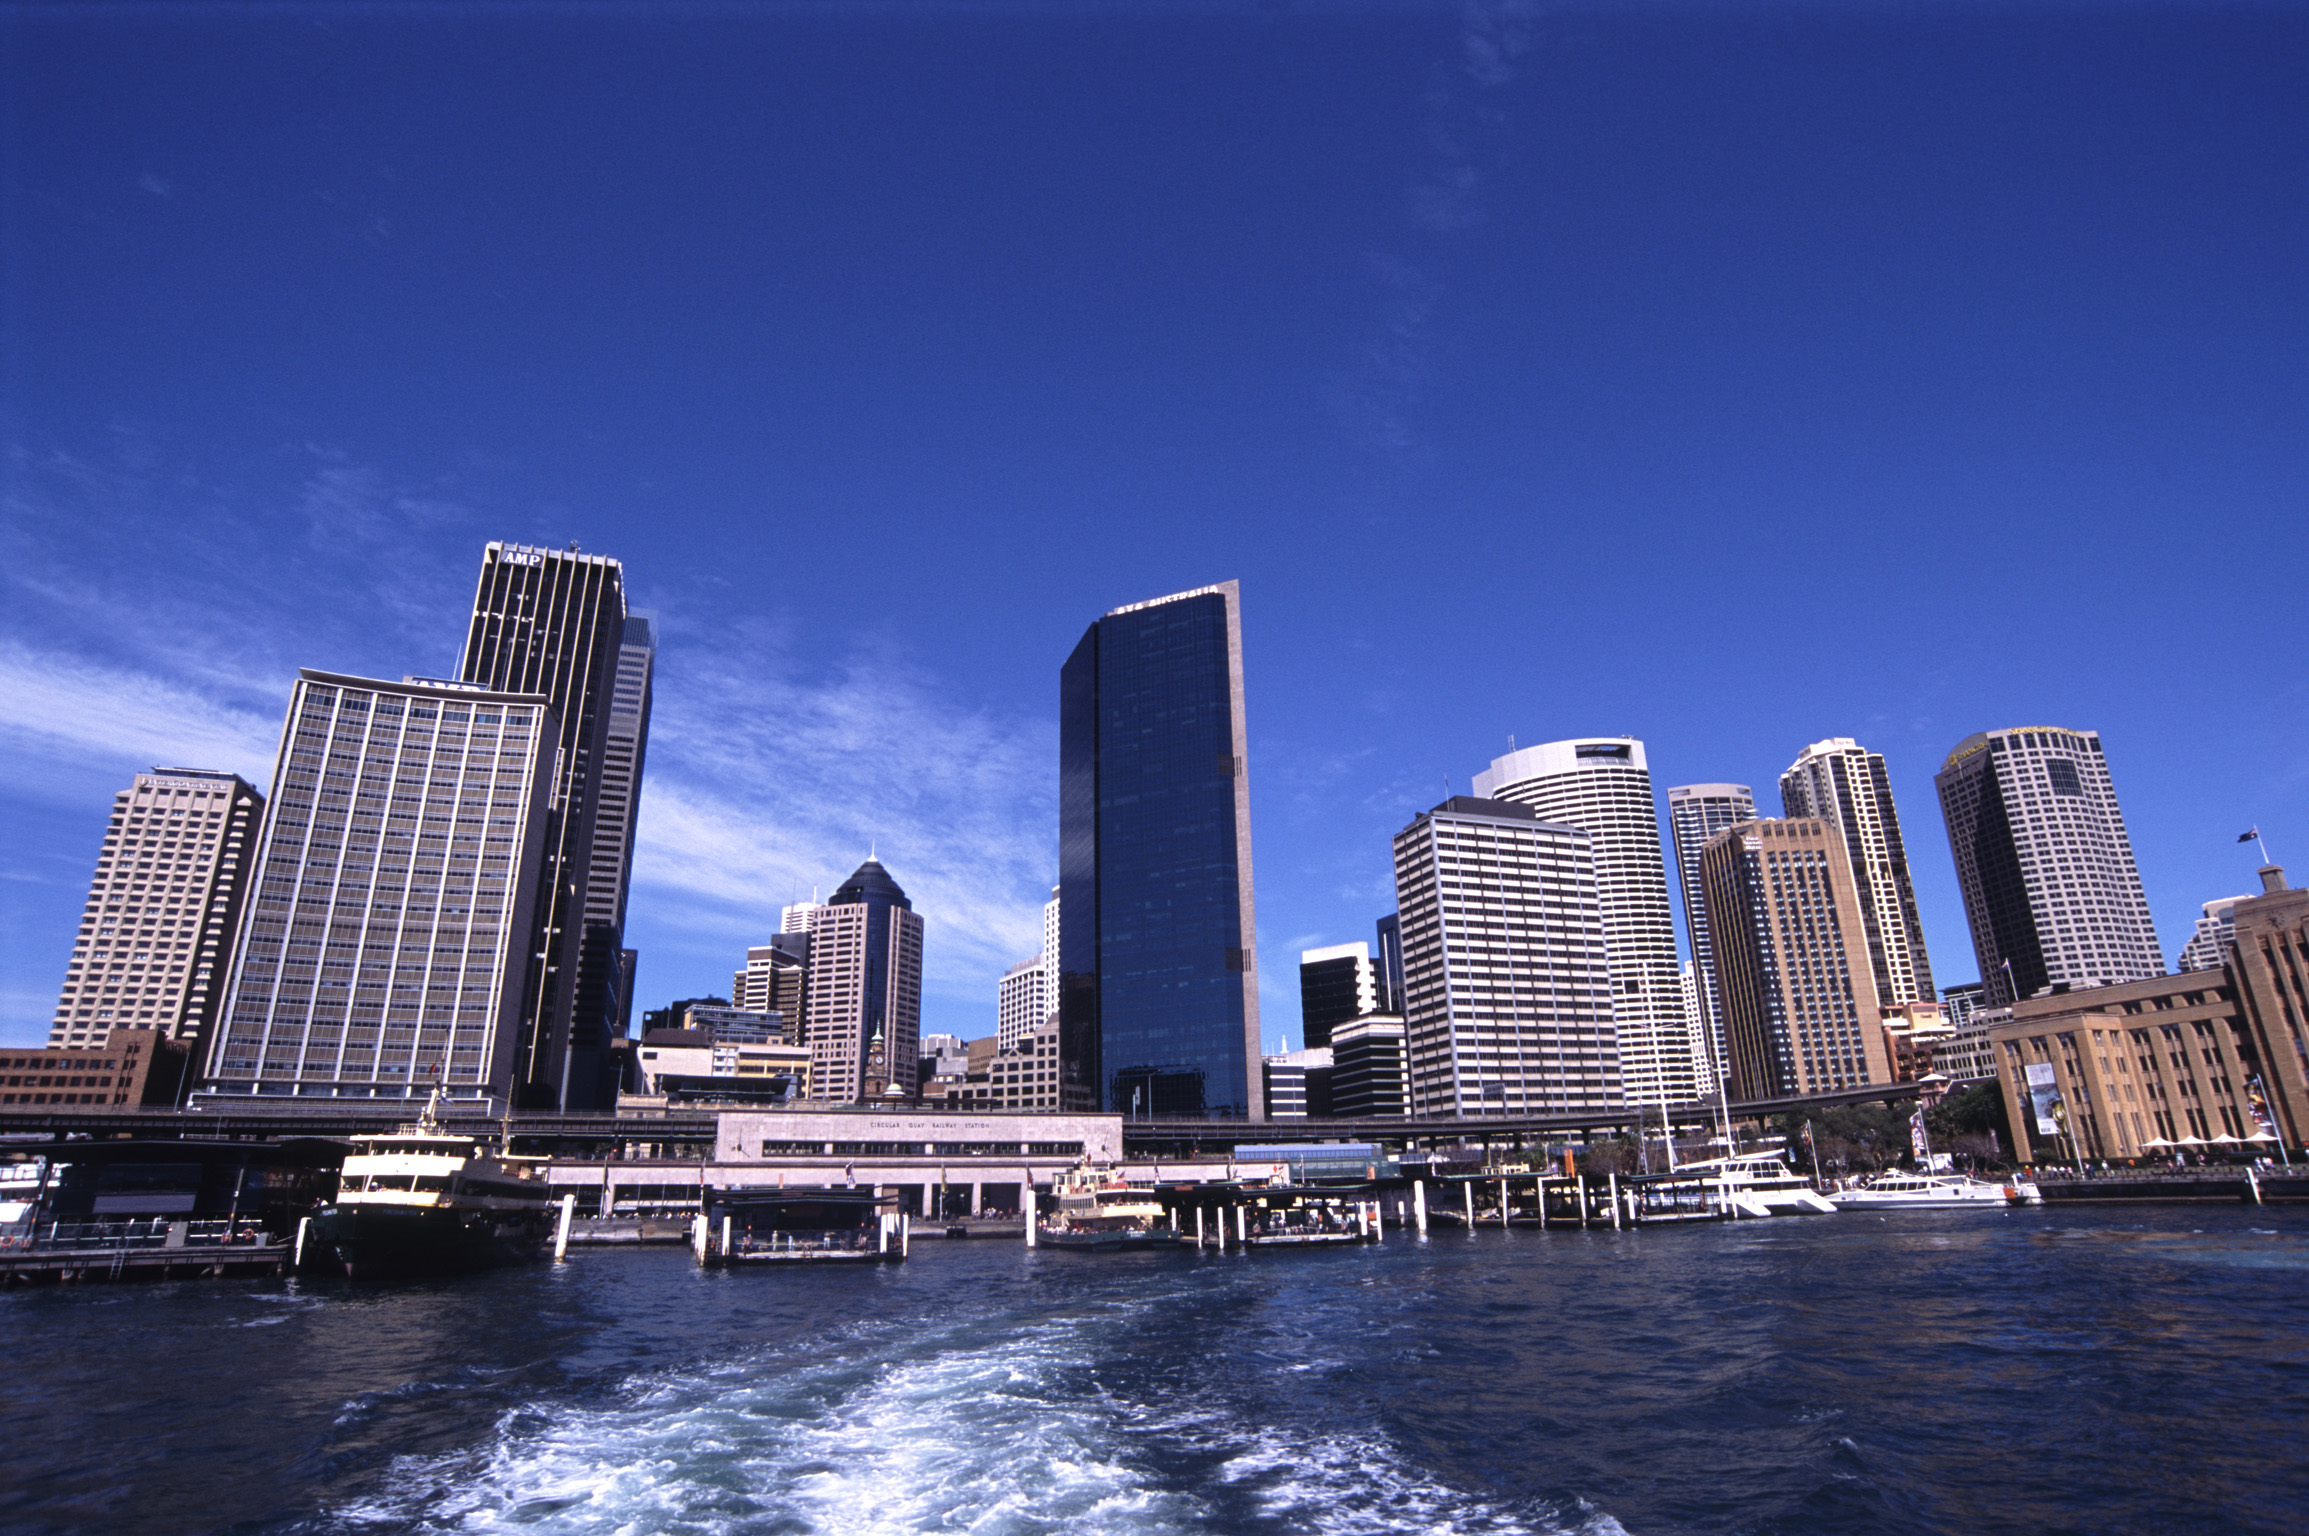 Looking off Back of Boat at Office Towers in Central Business District on Circular Quay, Bennelong Point, Sydney, Australia